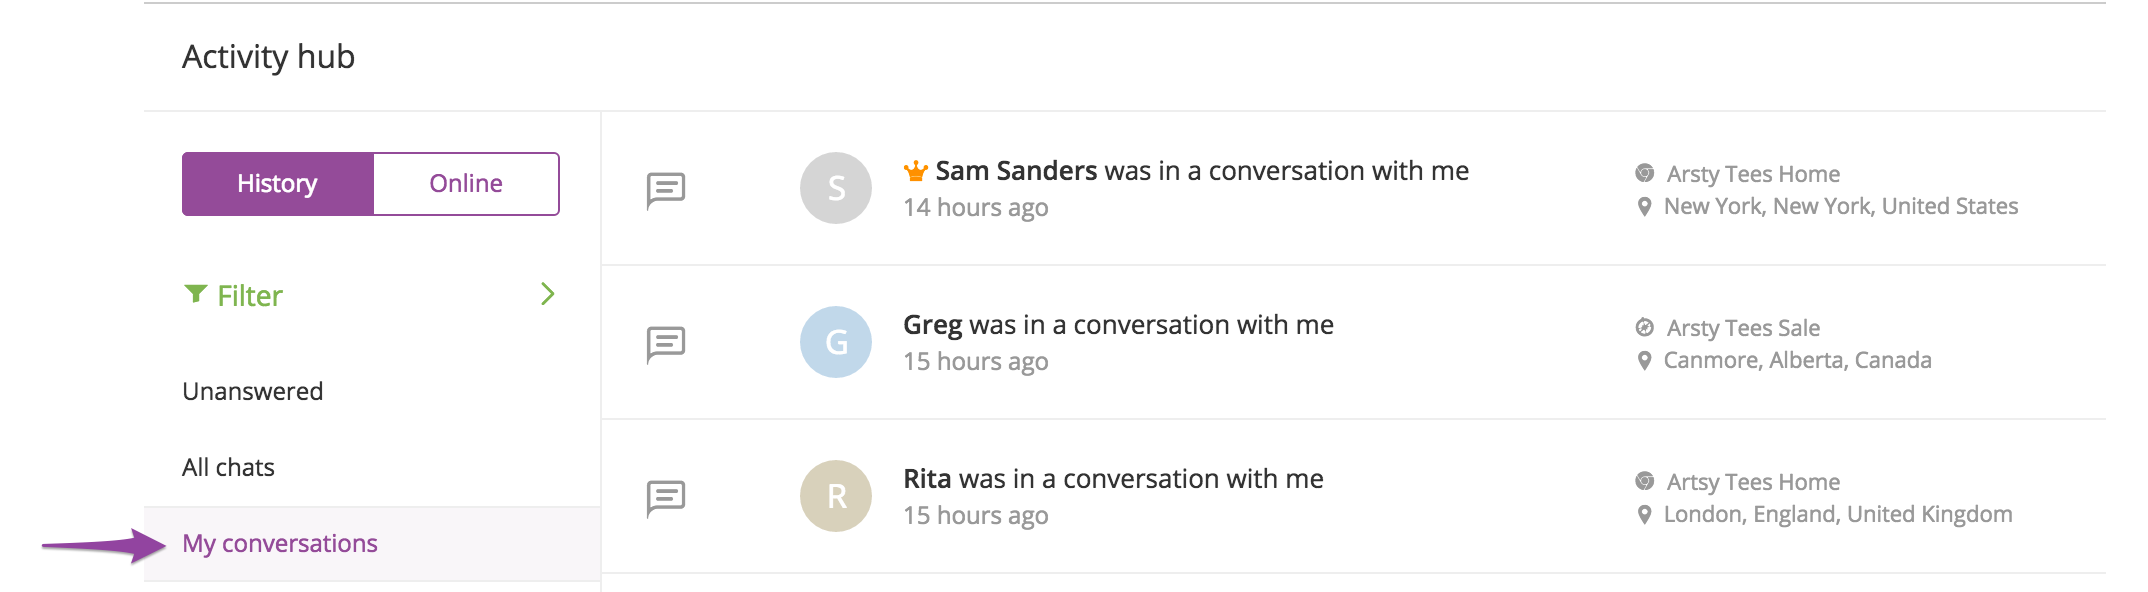 Viewing previous conversations - My conversations